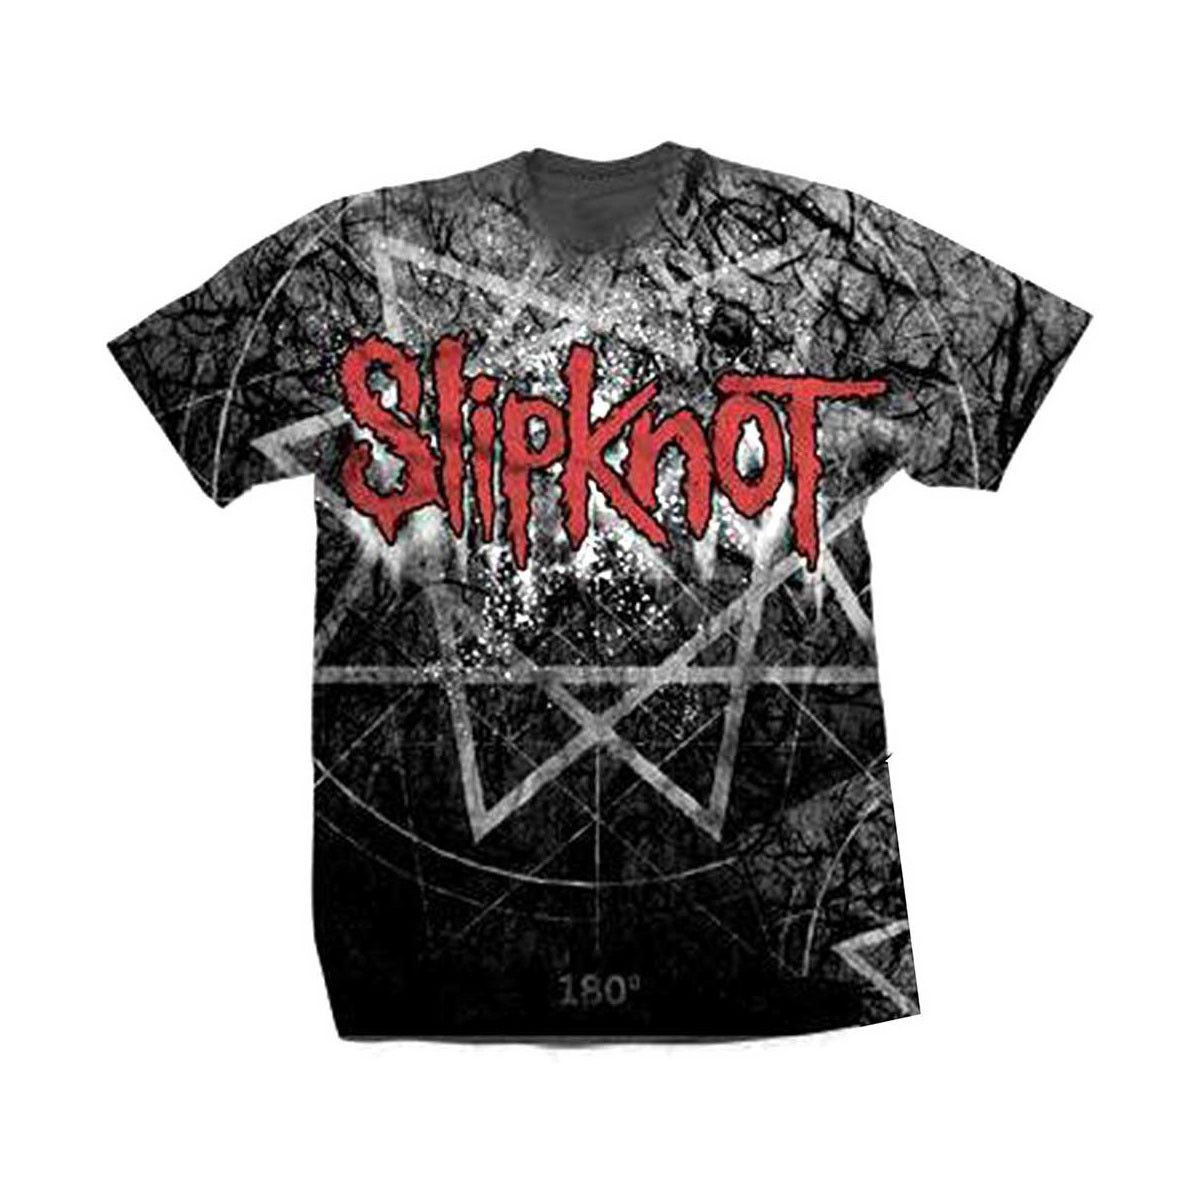 6cfe4068b99 Slipknot t-shirt with all over sublimated  Giant Star  design . This is a  unique limited run  One of a Kind  t-shirt. No two are alike. and